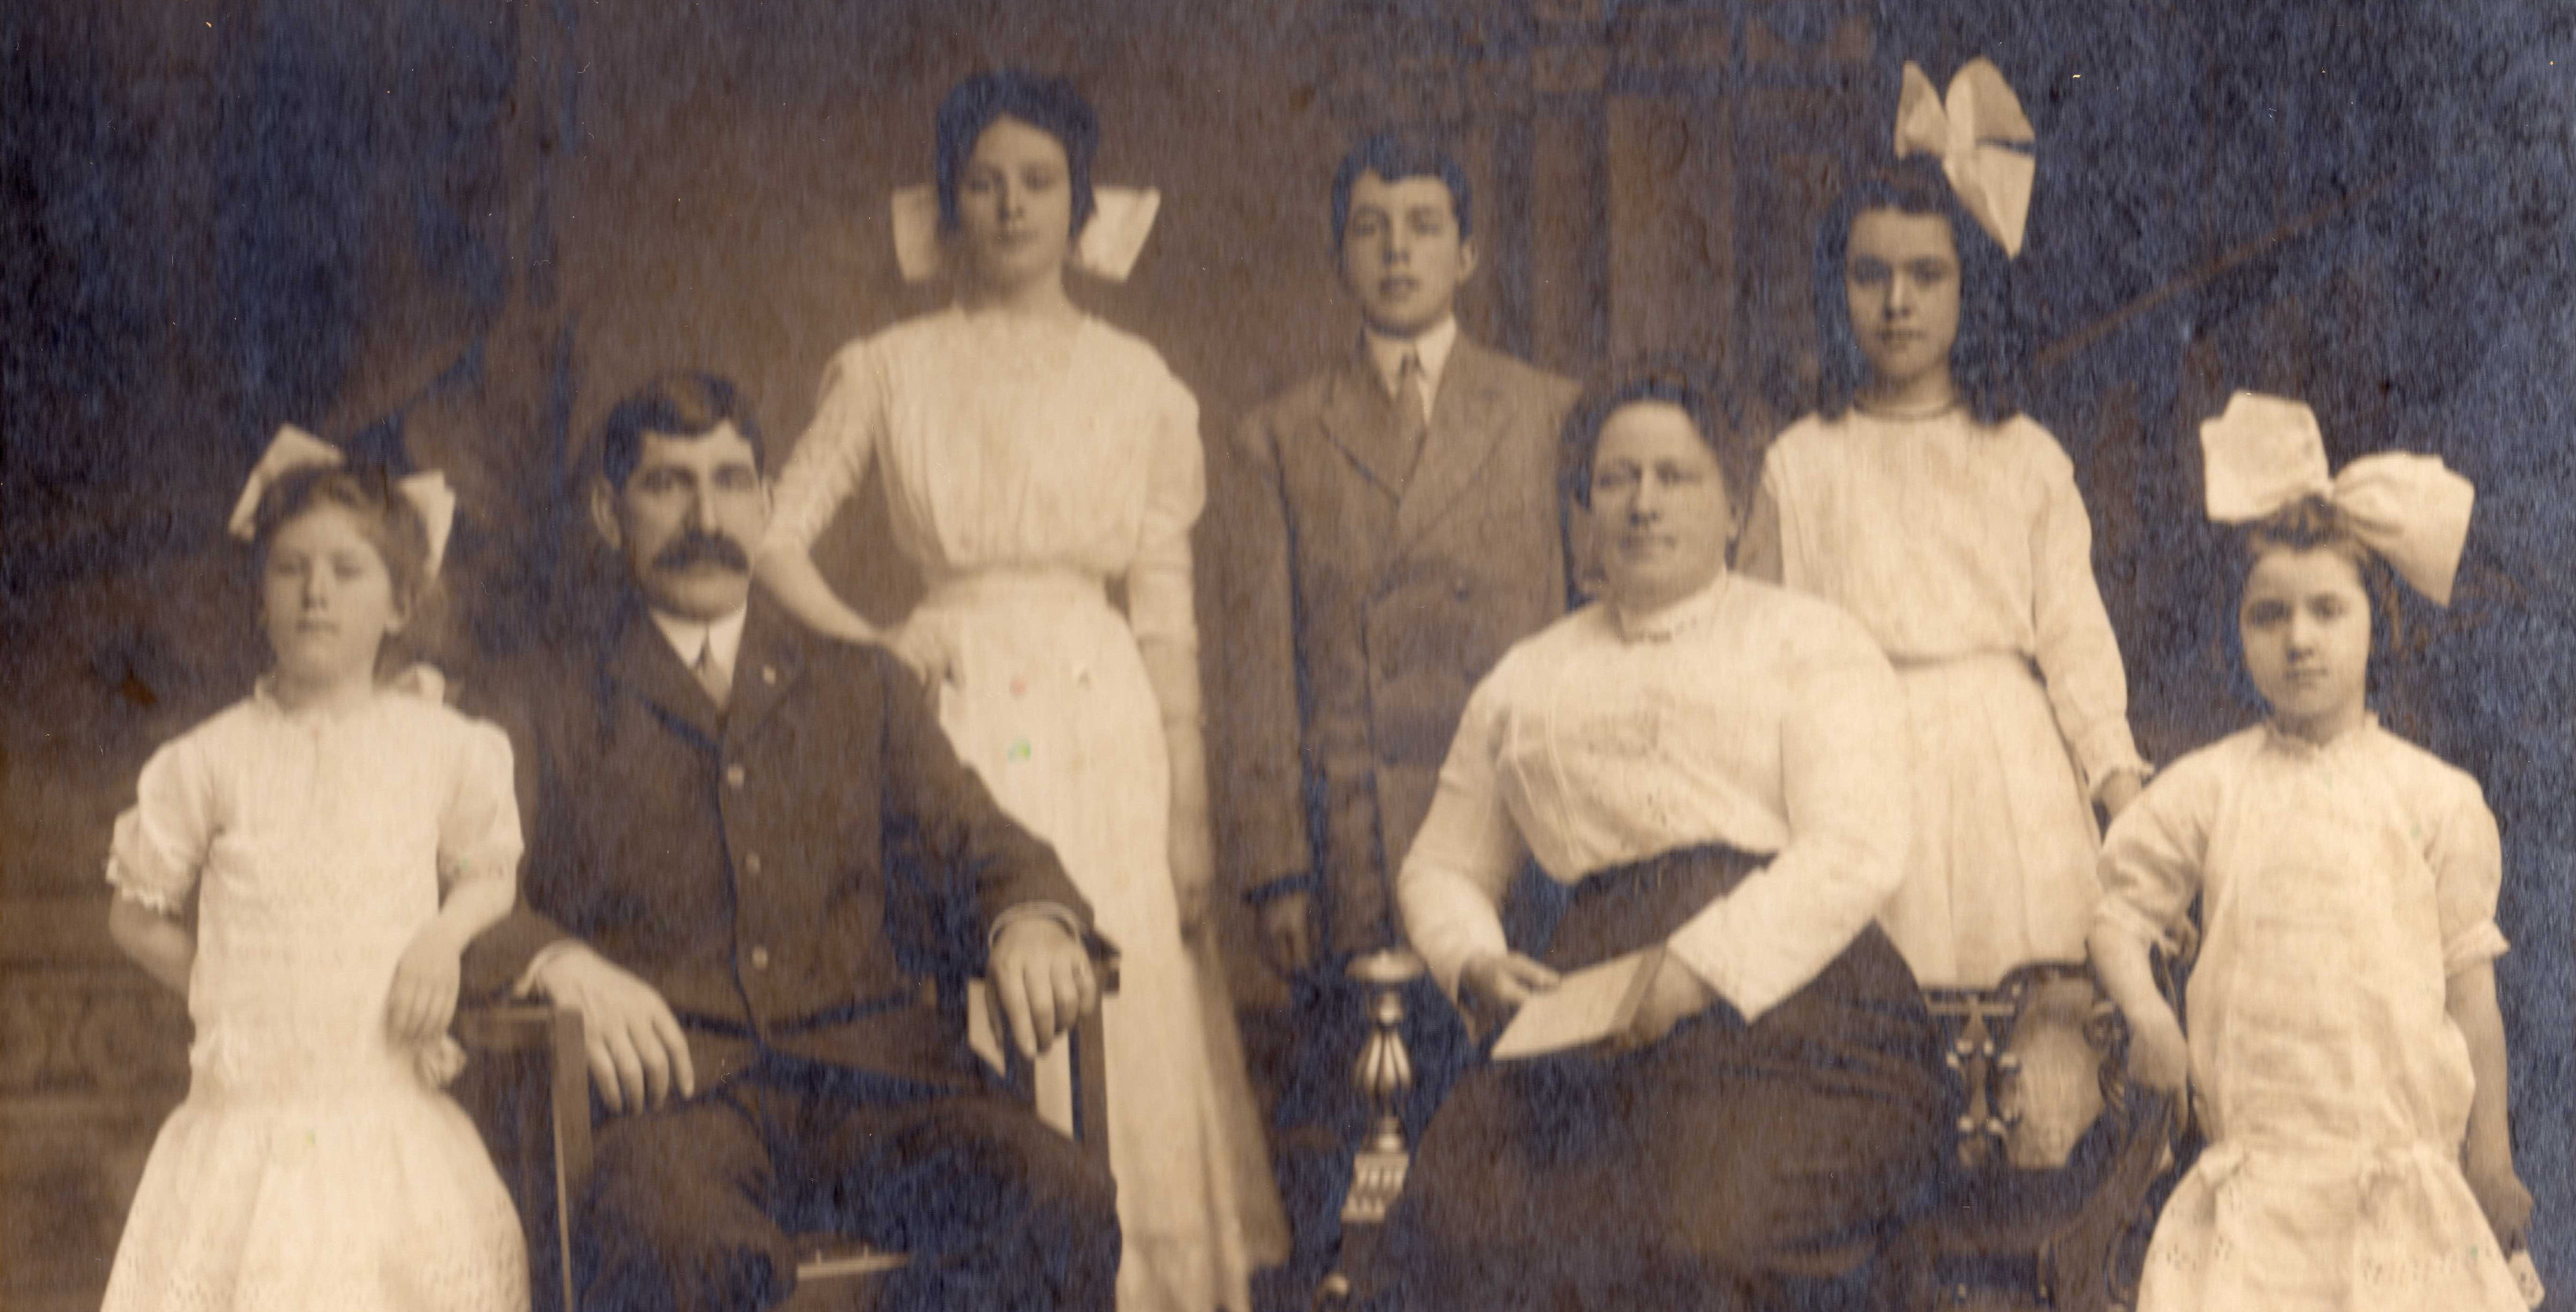 Laurence and Margaret Driscoll with their children. Back row (L-R): Rose, George, Josephine; front row: Helen (left) and Augusta (right). Photo taken about 1912.